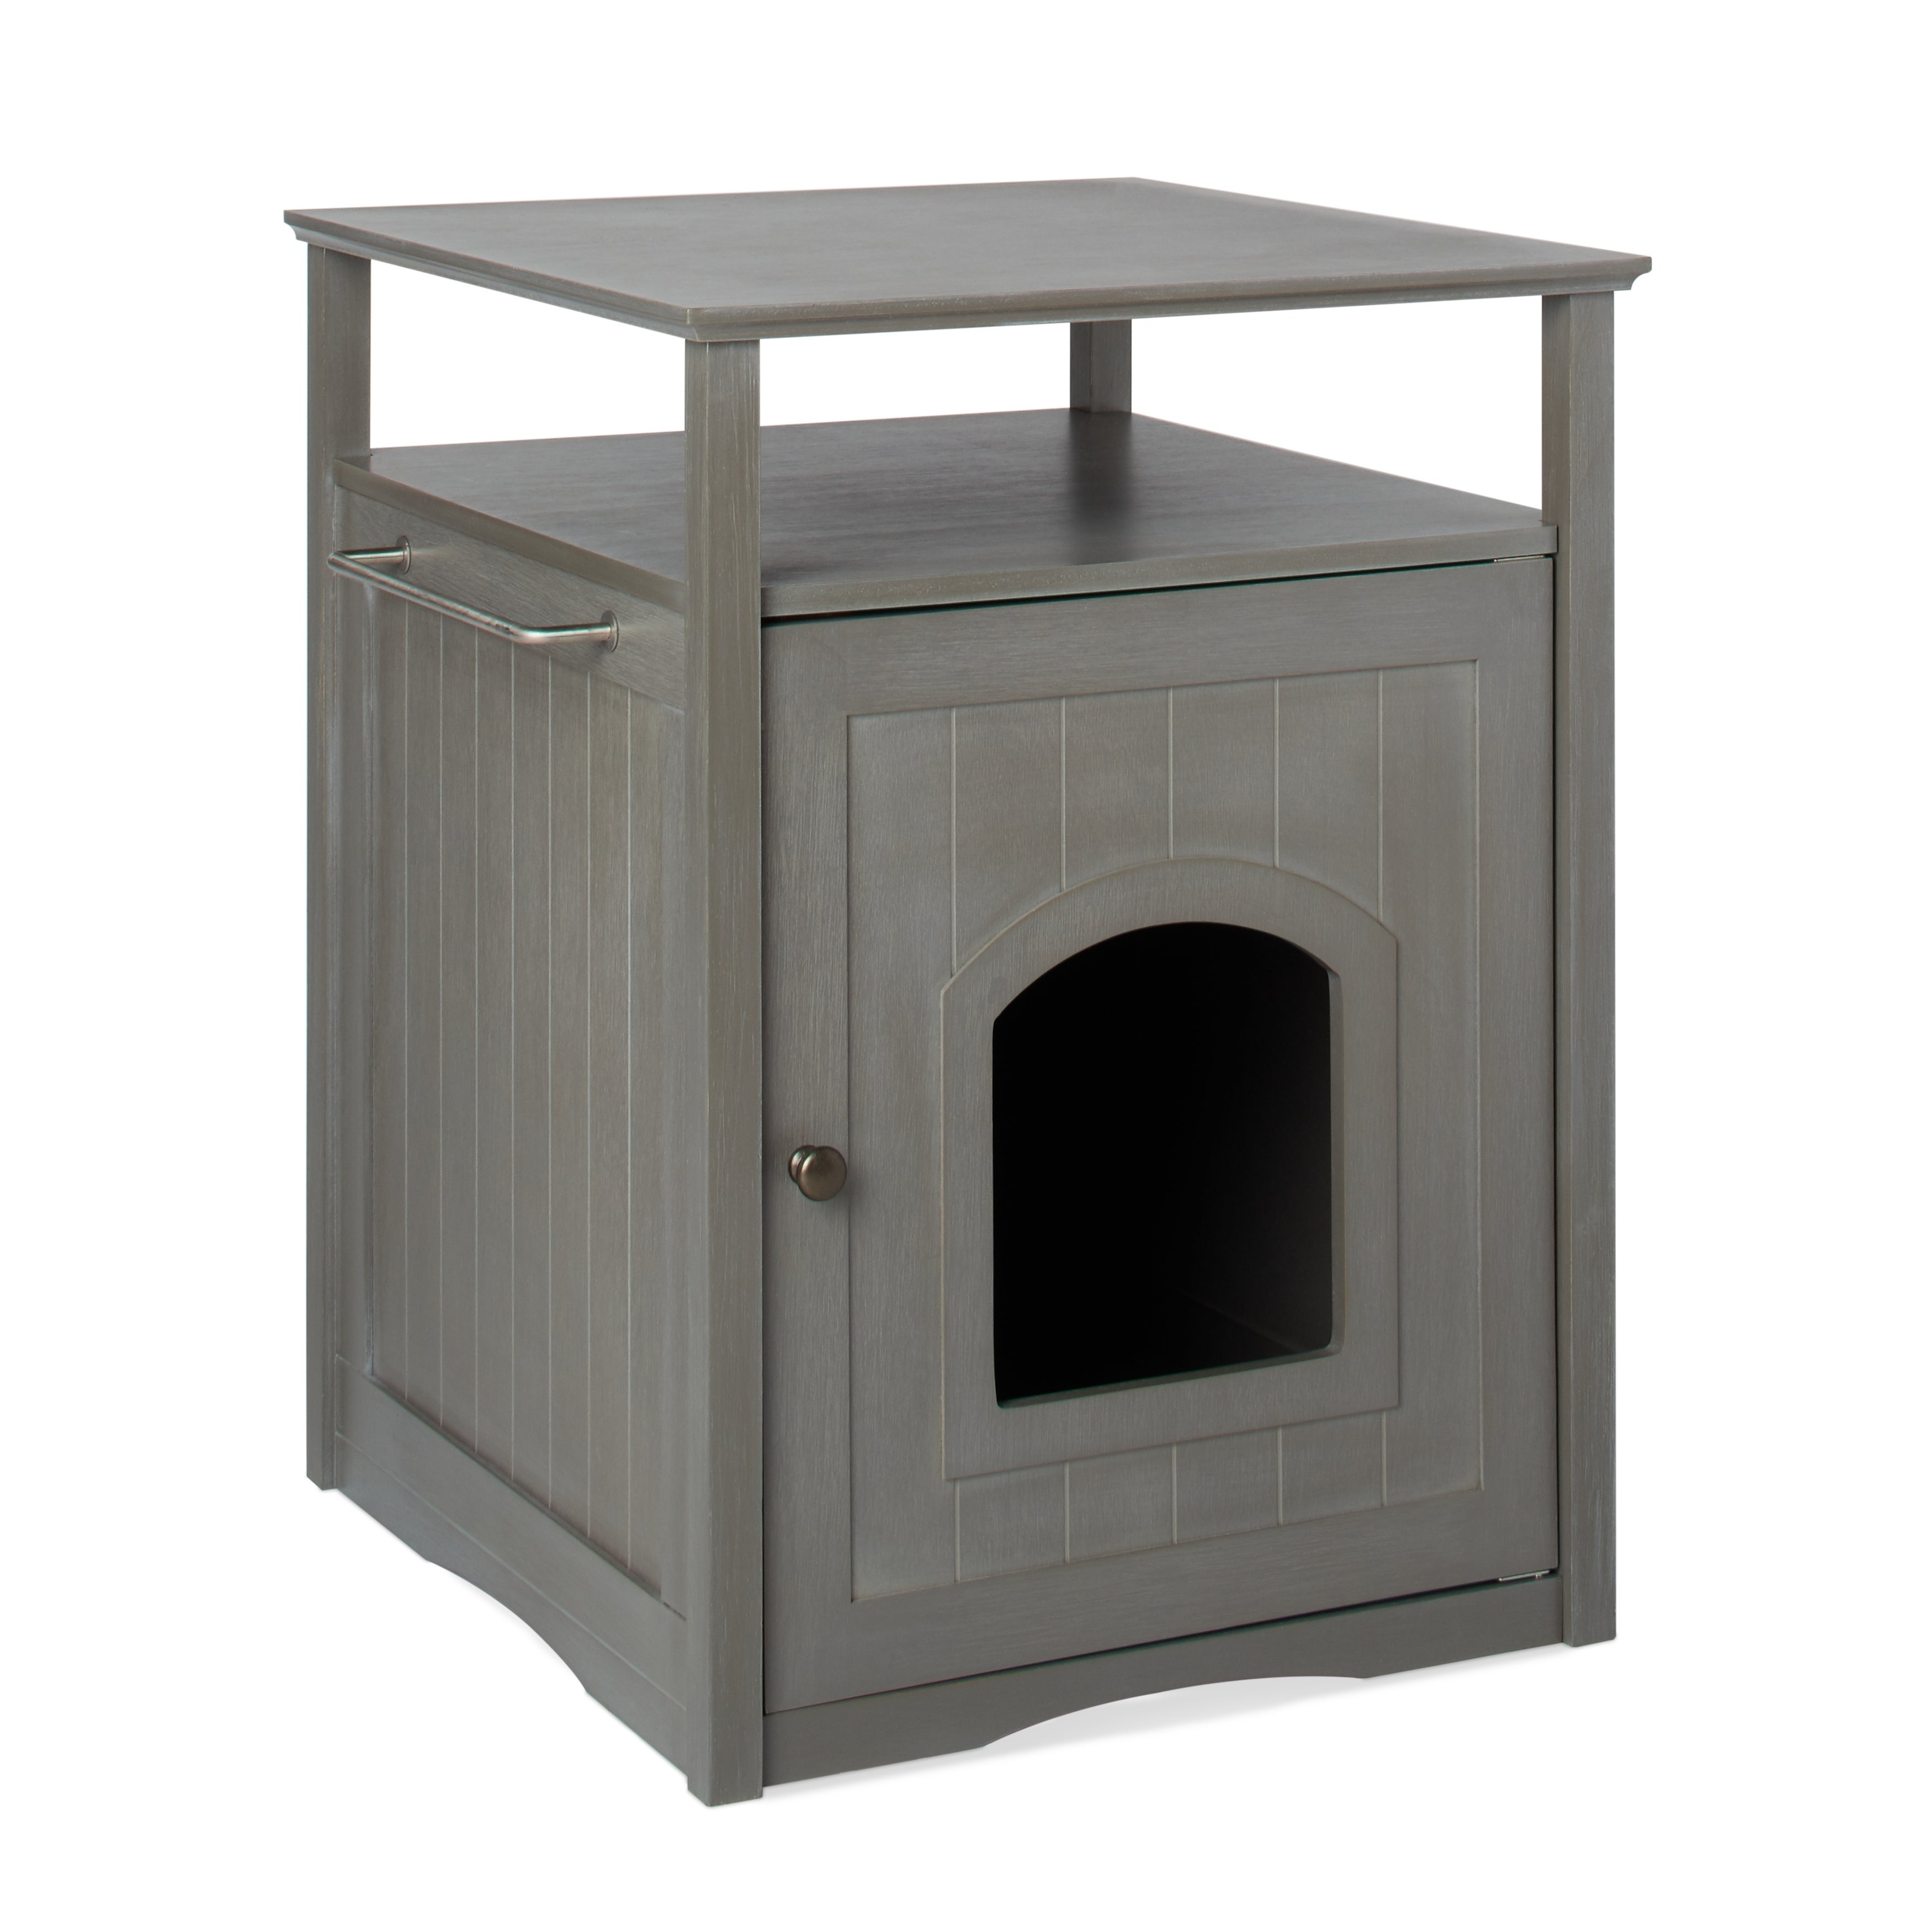 Merry Products Furniture Hidden Cat Litter Box Enclosure - Free Shipping  Today - Overstock.com - 13110966